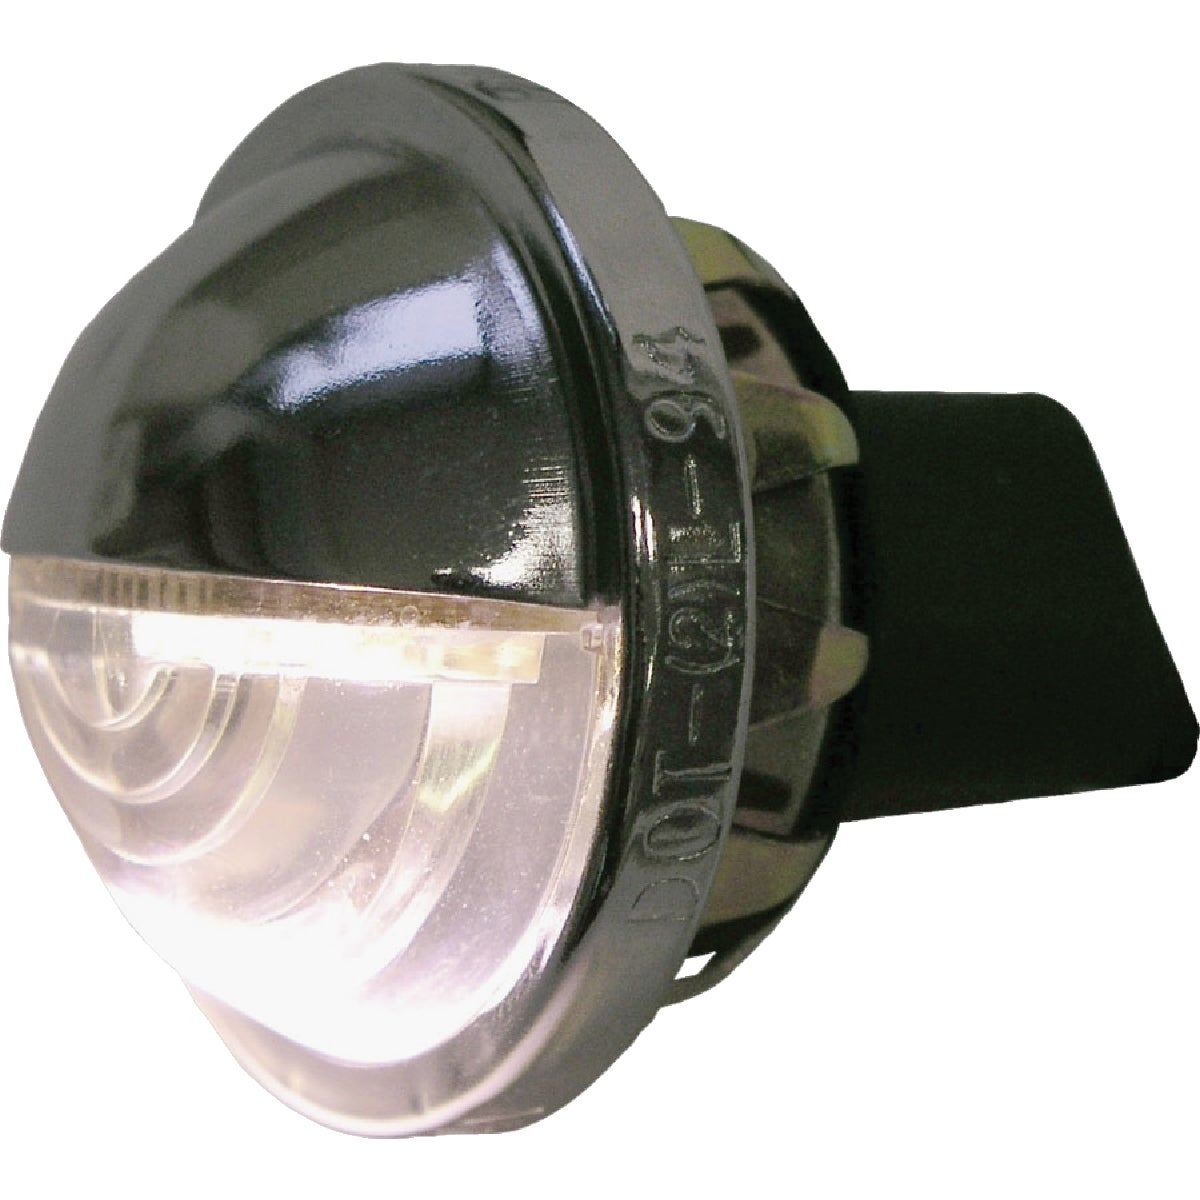 LED CHROME LICENSE LIGHT - V298C by Peterson Mfg Co